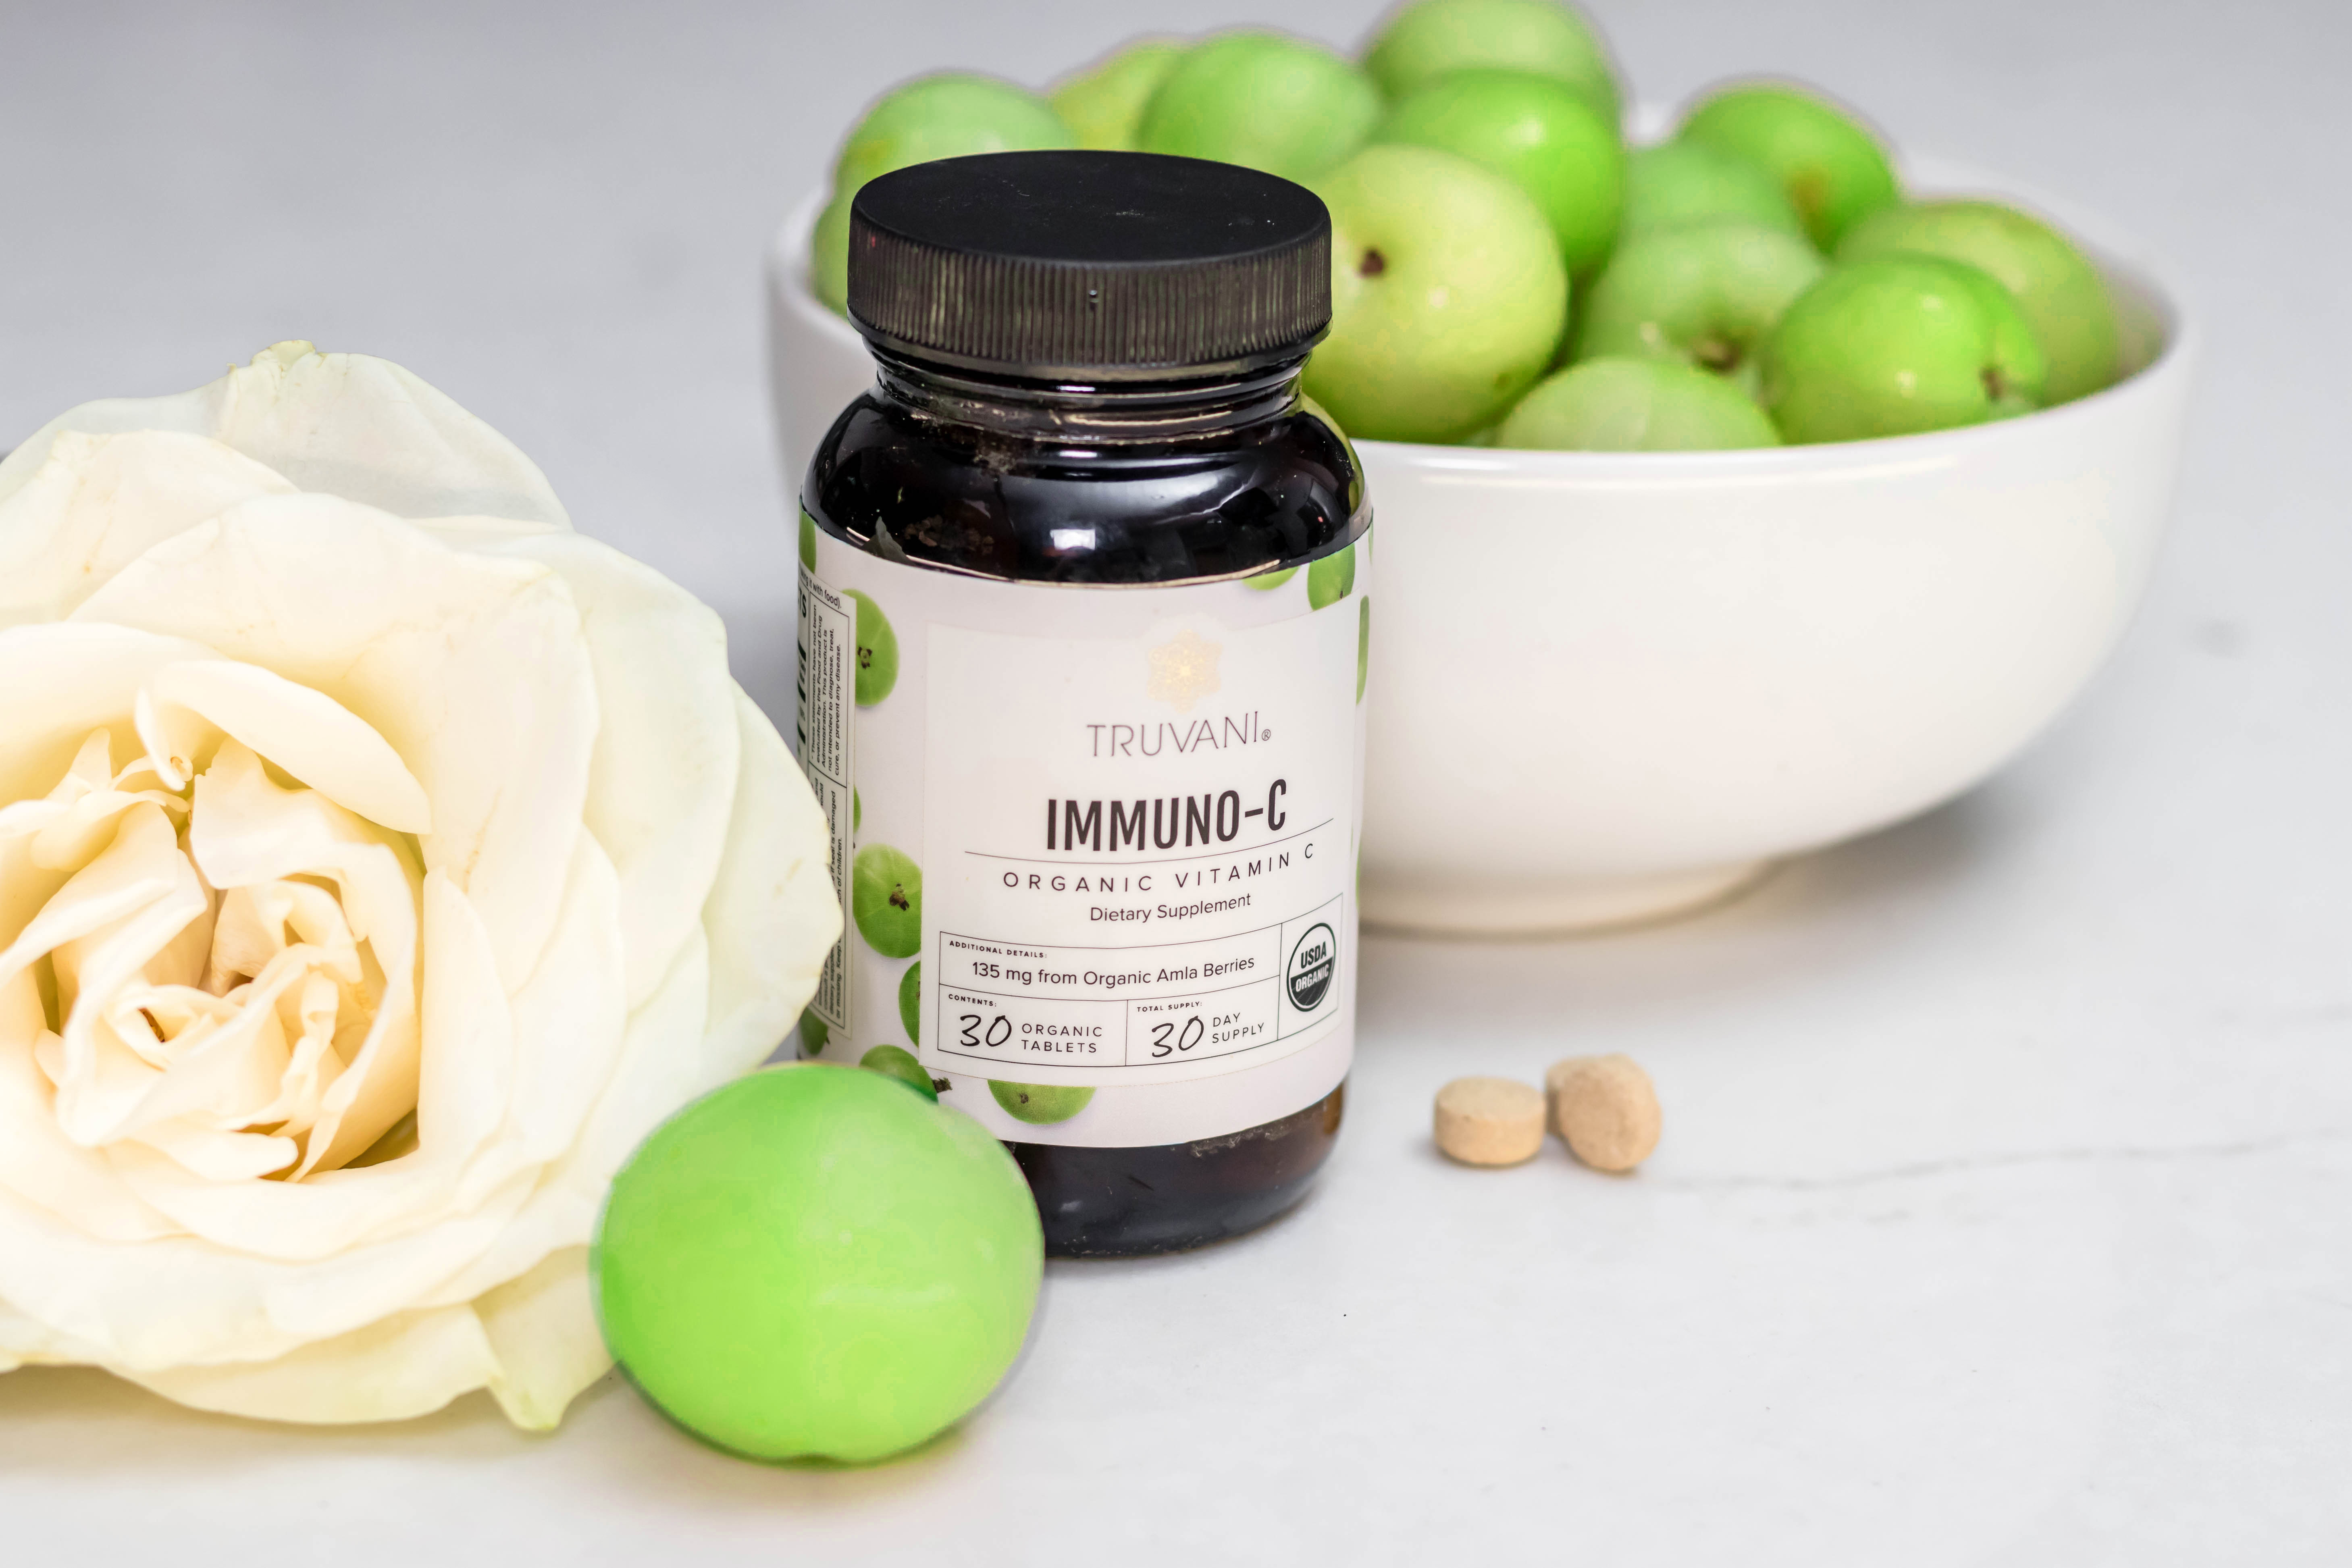 Truvani organic vitamin C from amla berries